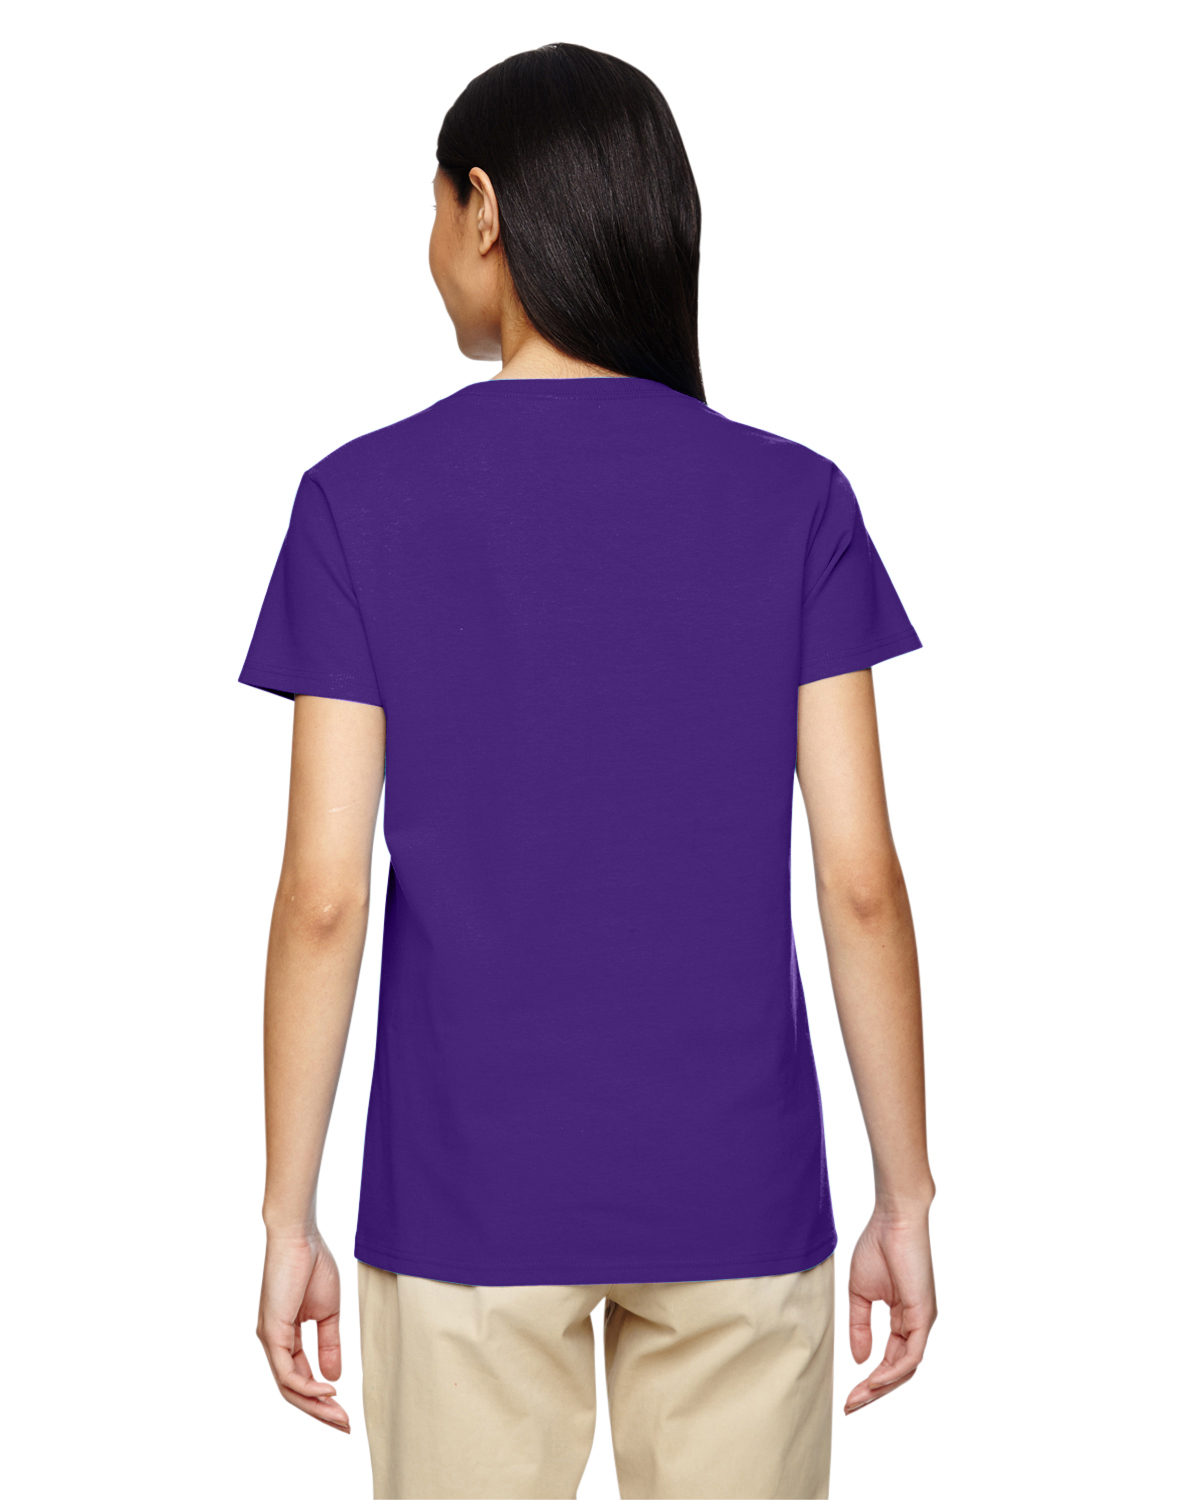 New gildan women 39 s heavy cotton short sleeves ladies v for Gildan t shirts online